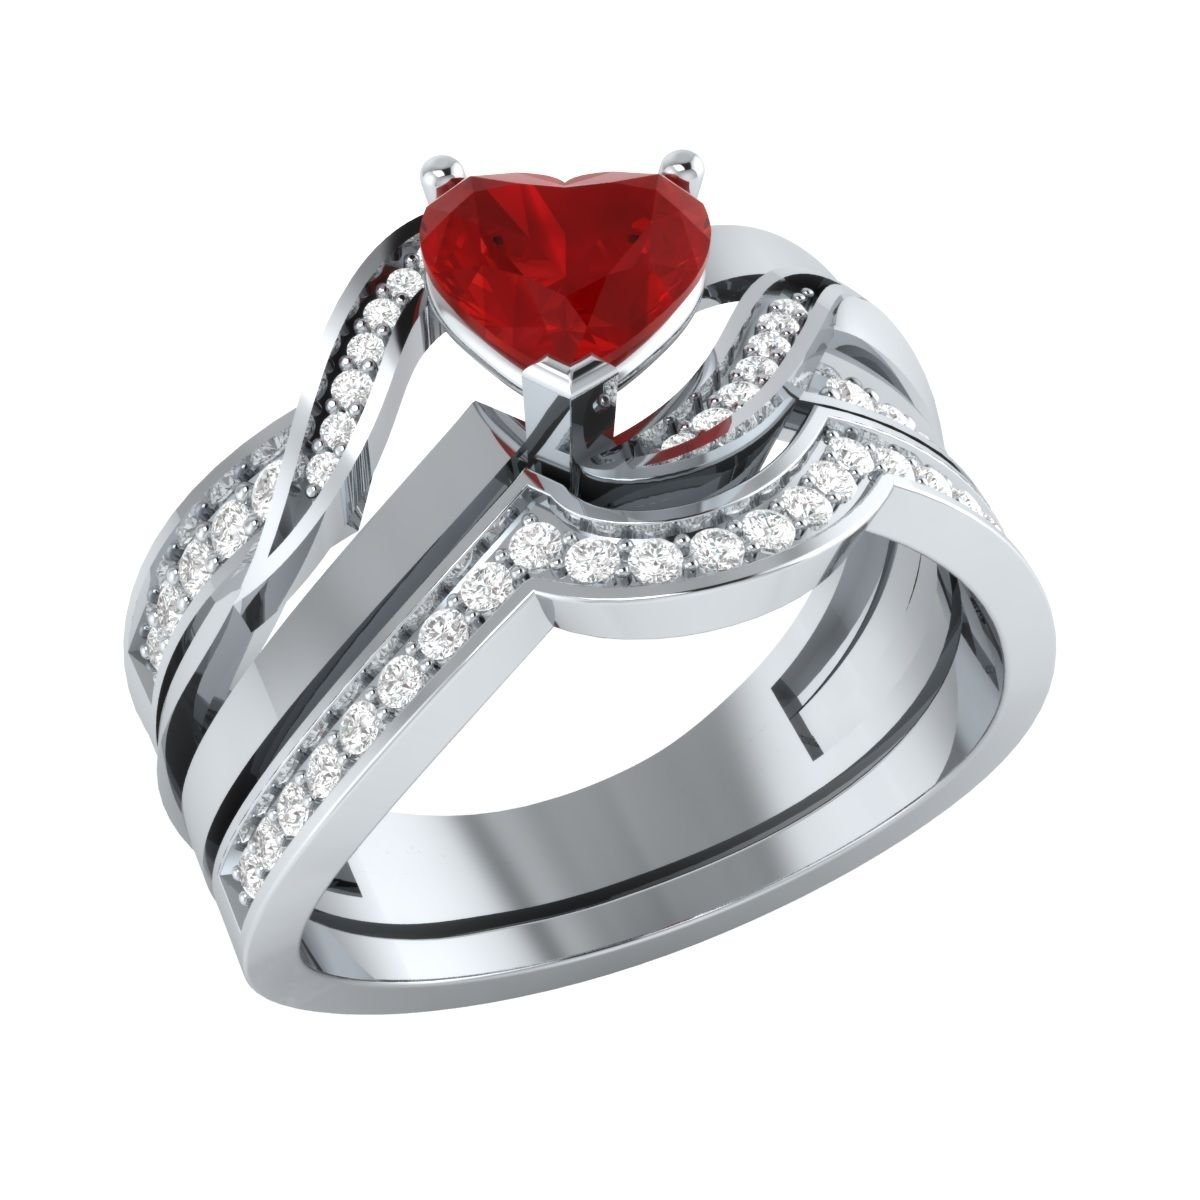 Lovely 1.03 ct Heart & Round Cut Created Red Ruby & White Sapphire 14K White Gold Plated Engagement Wedding Bridal Ring Set .925 Sterling Silver